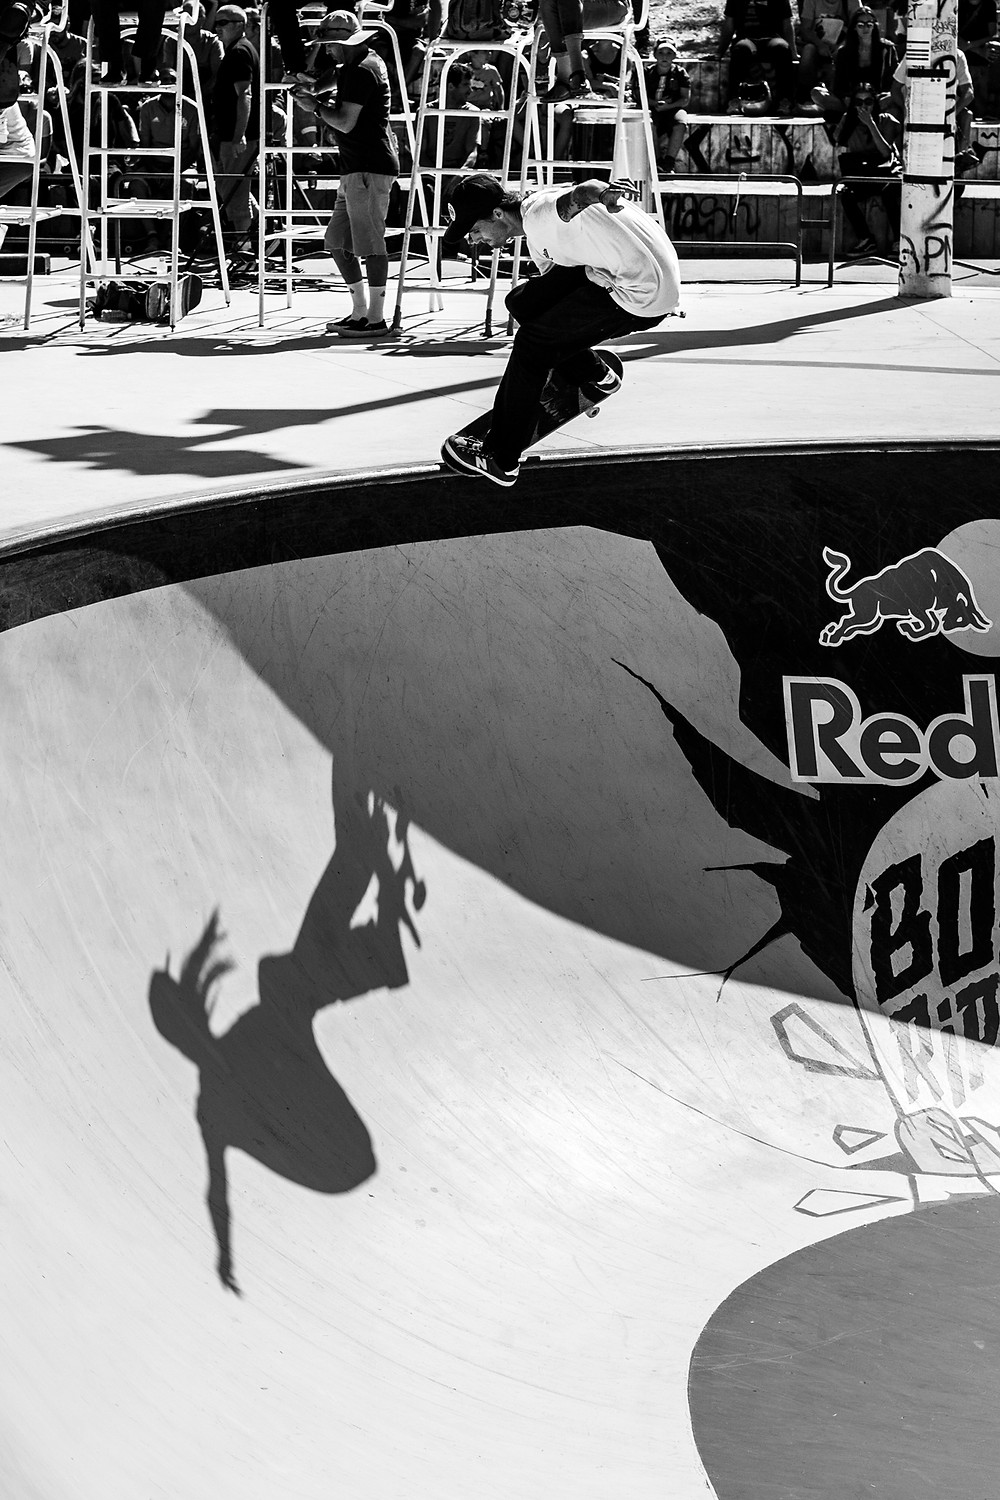 Red-Bull-Bowl-Rippers-18_C.Chouleur_7